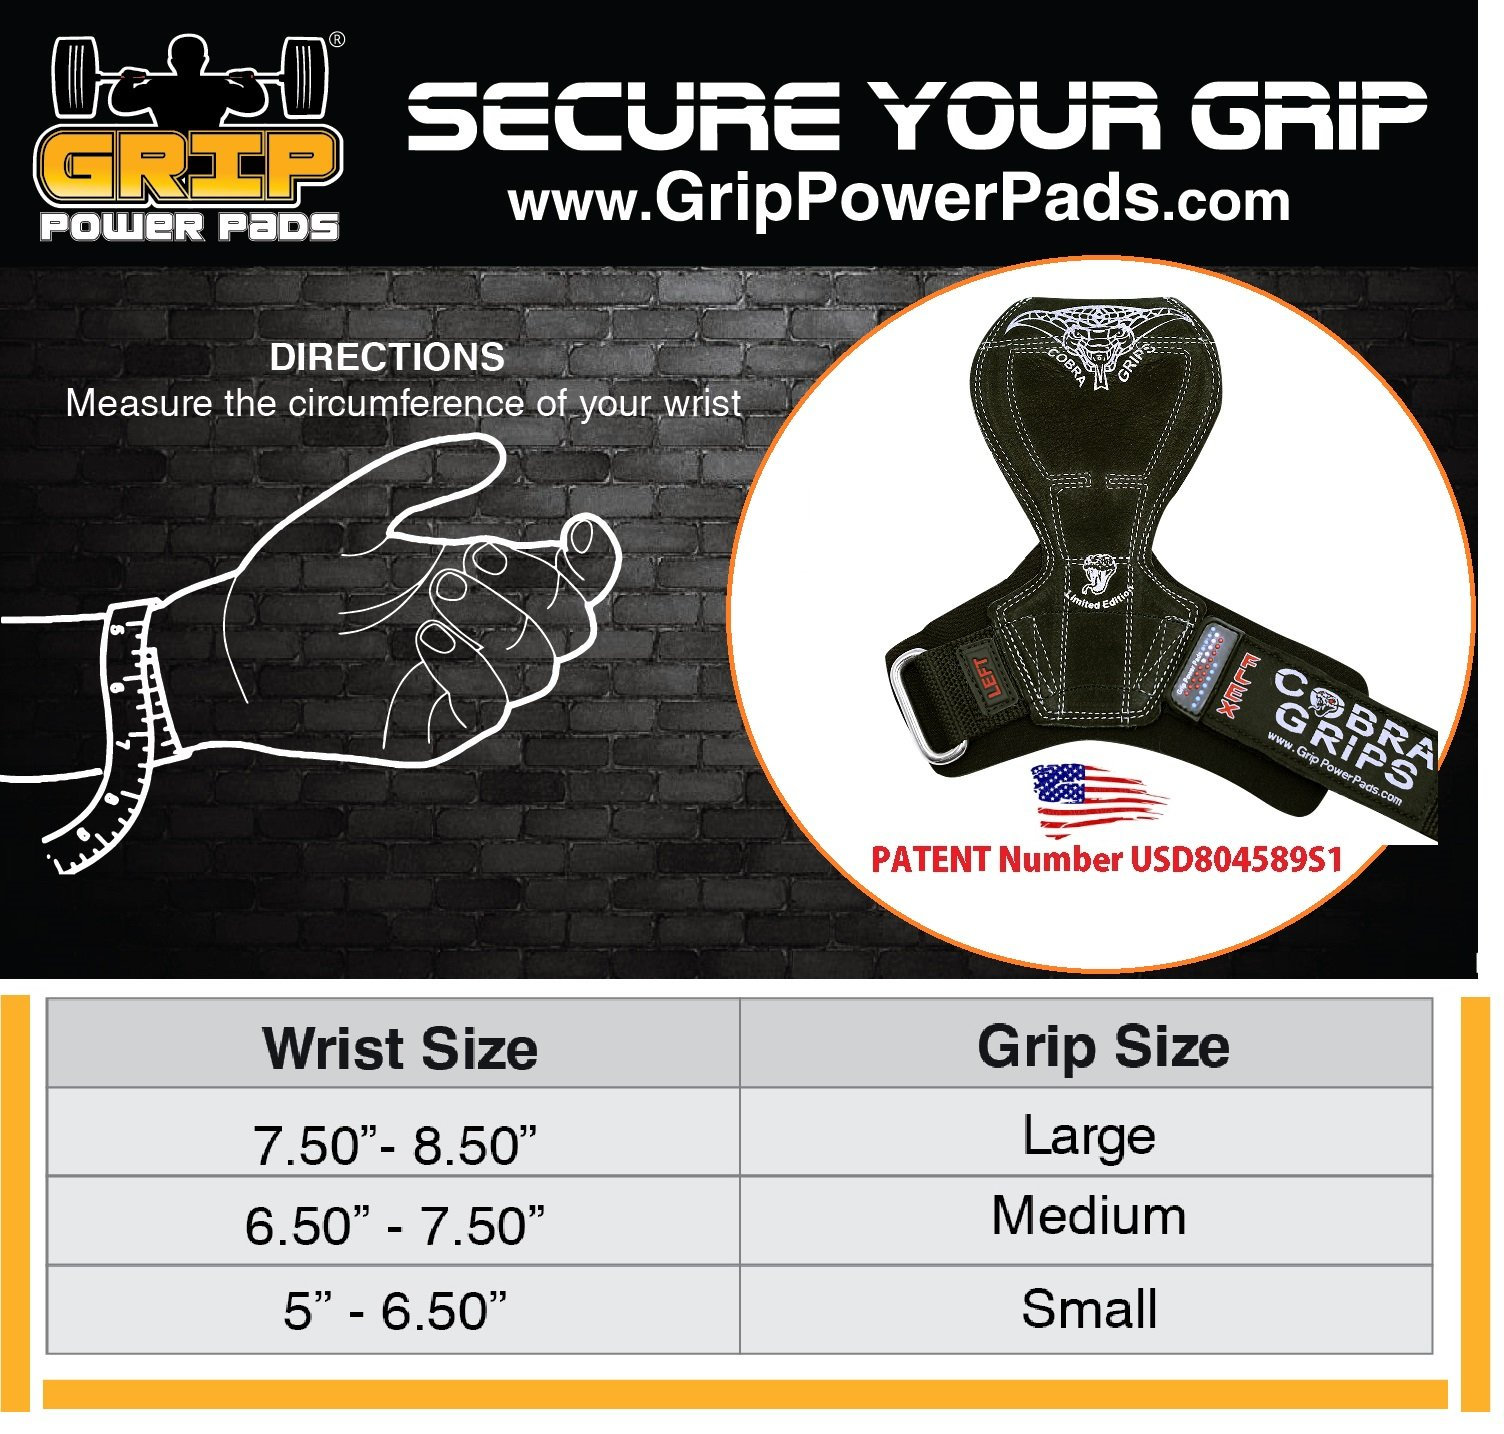 2018 Cobra Grips Flex Model Weight Lifting Gloves Heavy Duty Straps Alternative Power Lifting Hooks Best for Deadlifts with Padded Wrist Wrap Support Bodybuilding (Medium, Black Rubber) by Grip Power Pads (Image #3)